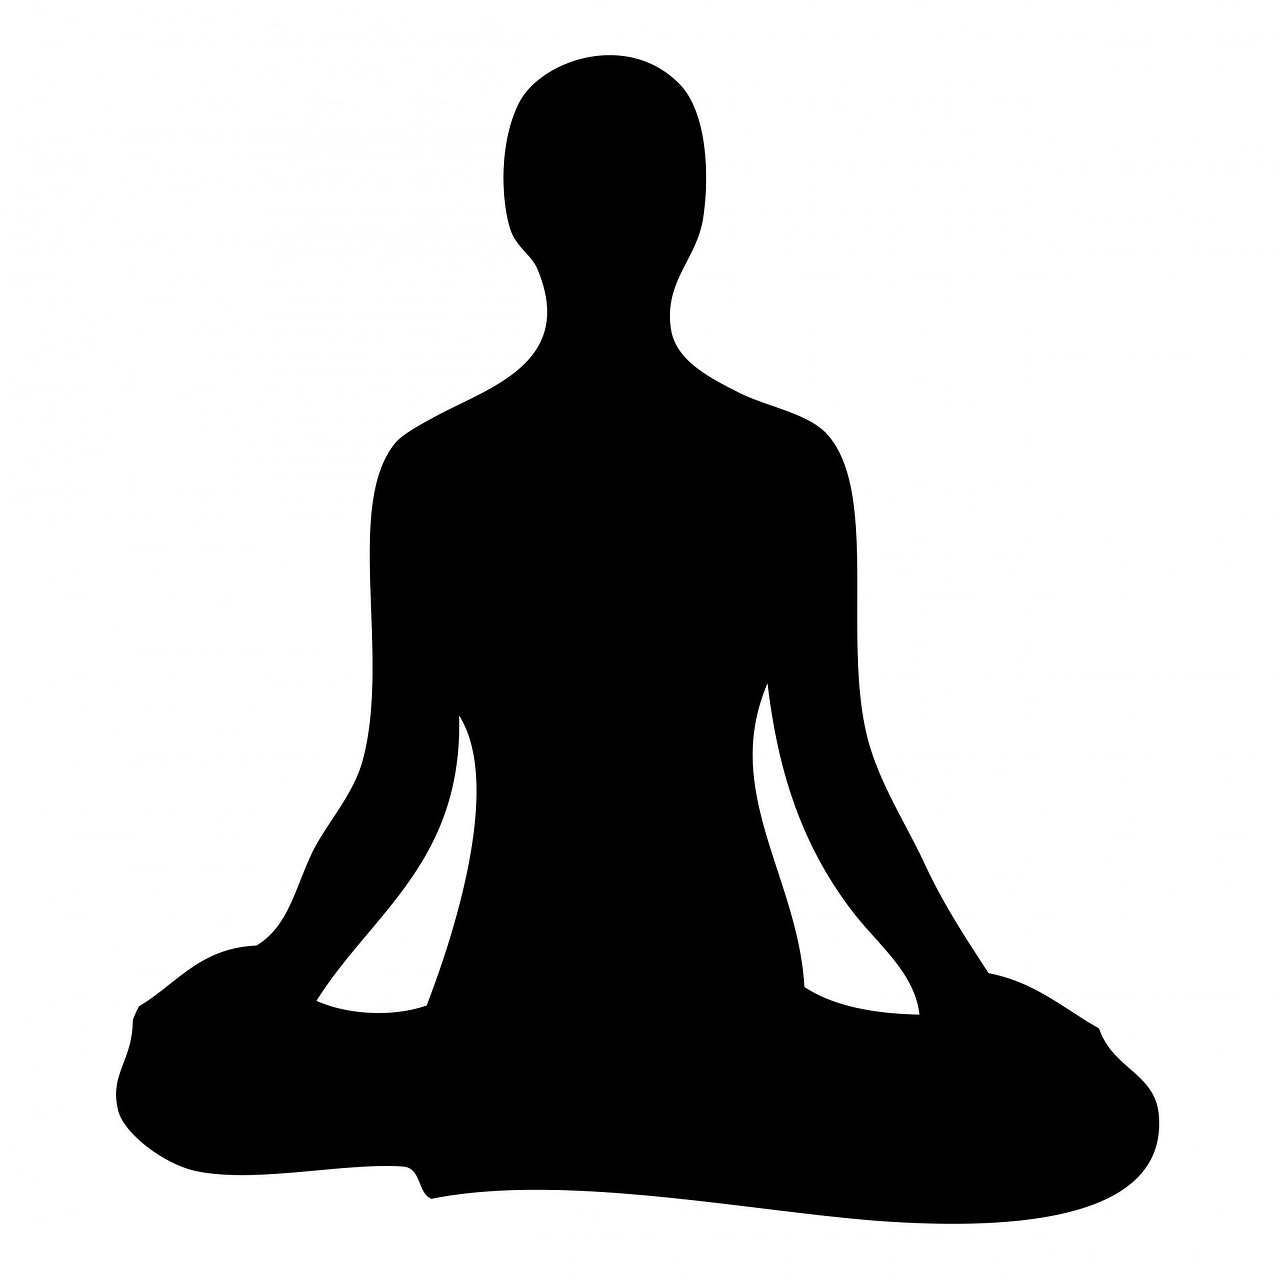 clipart black and white stock Meditation clipart yogasana. Collection of free fluctuability.